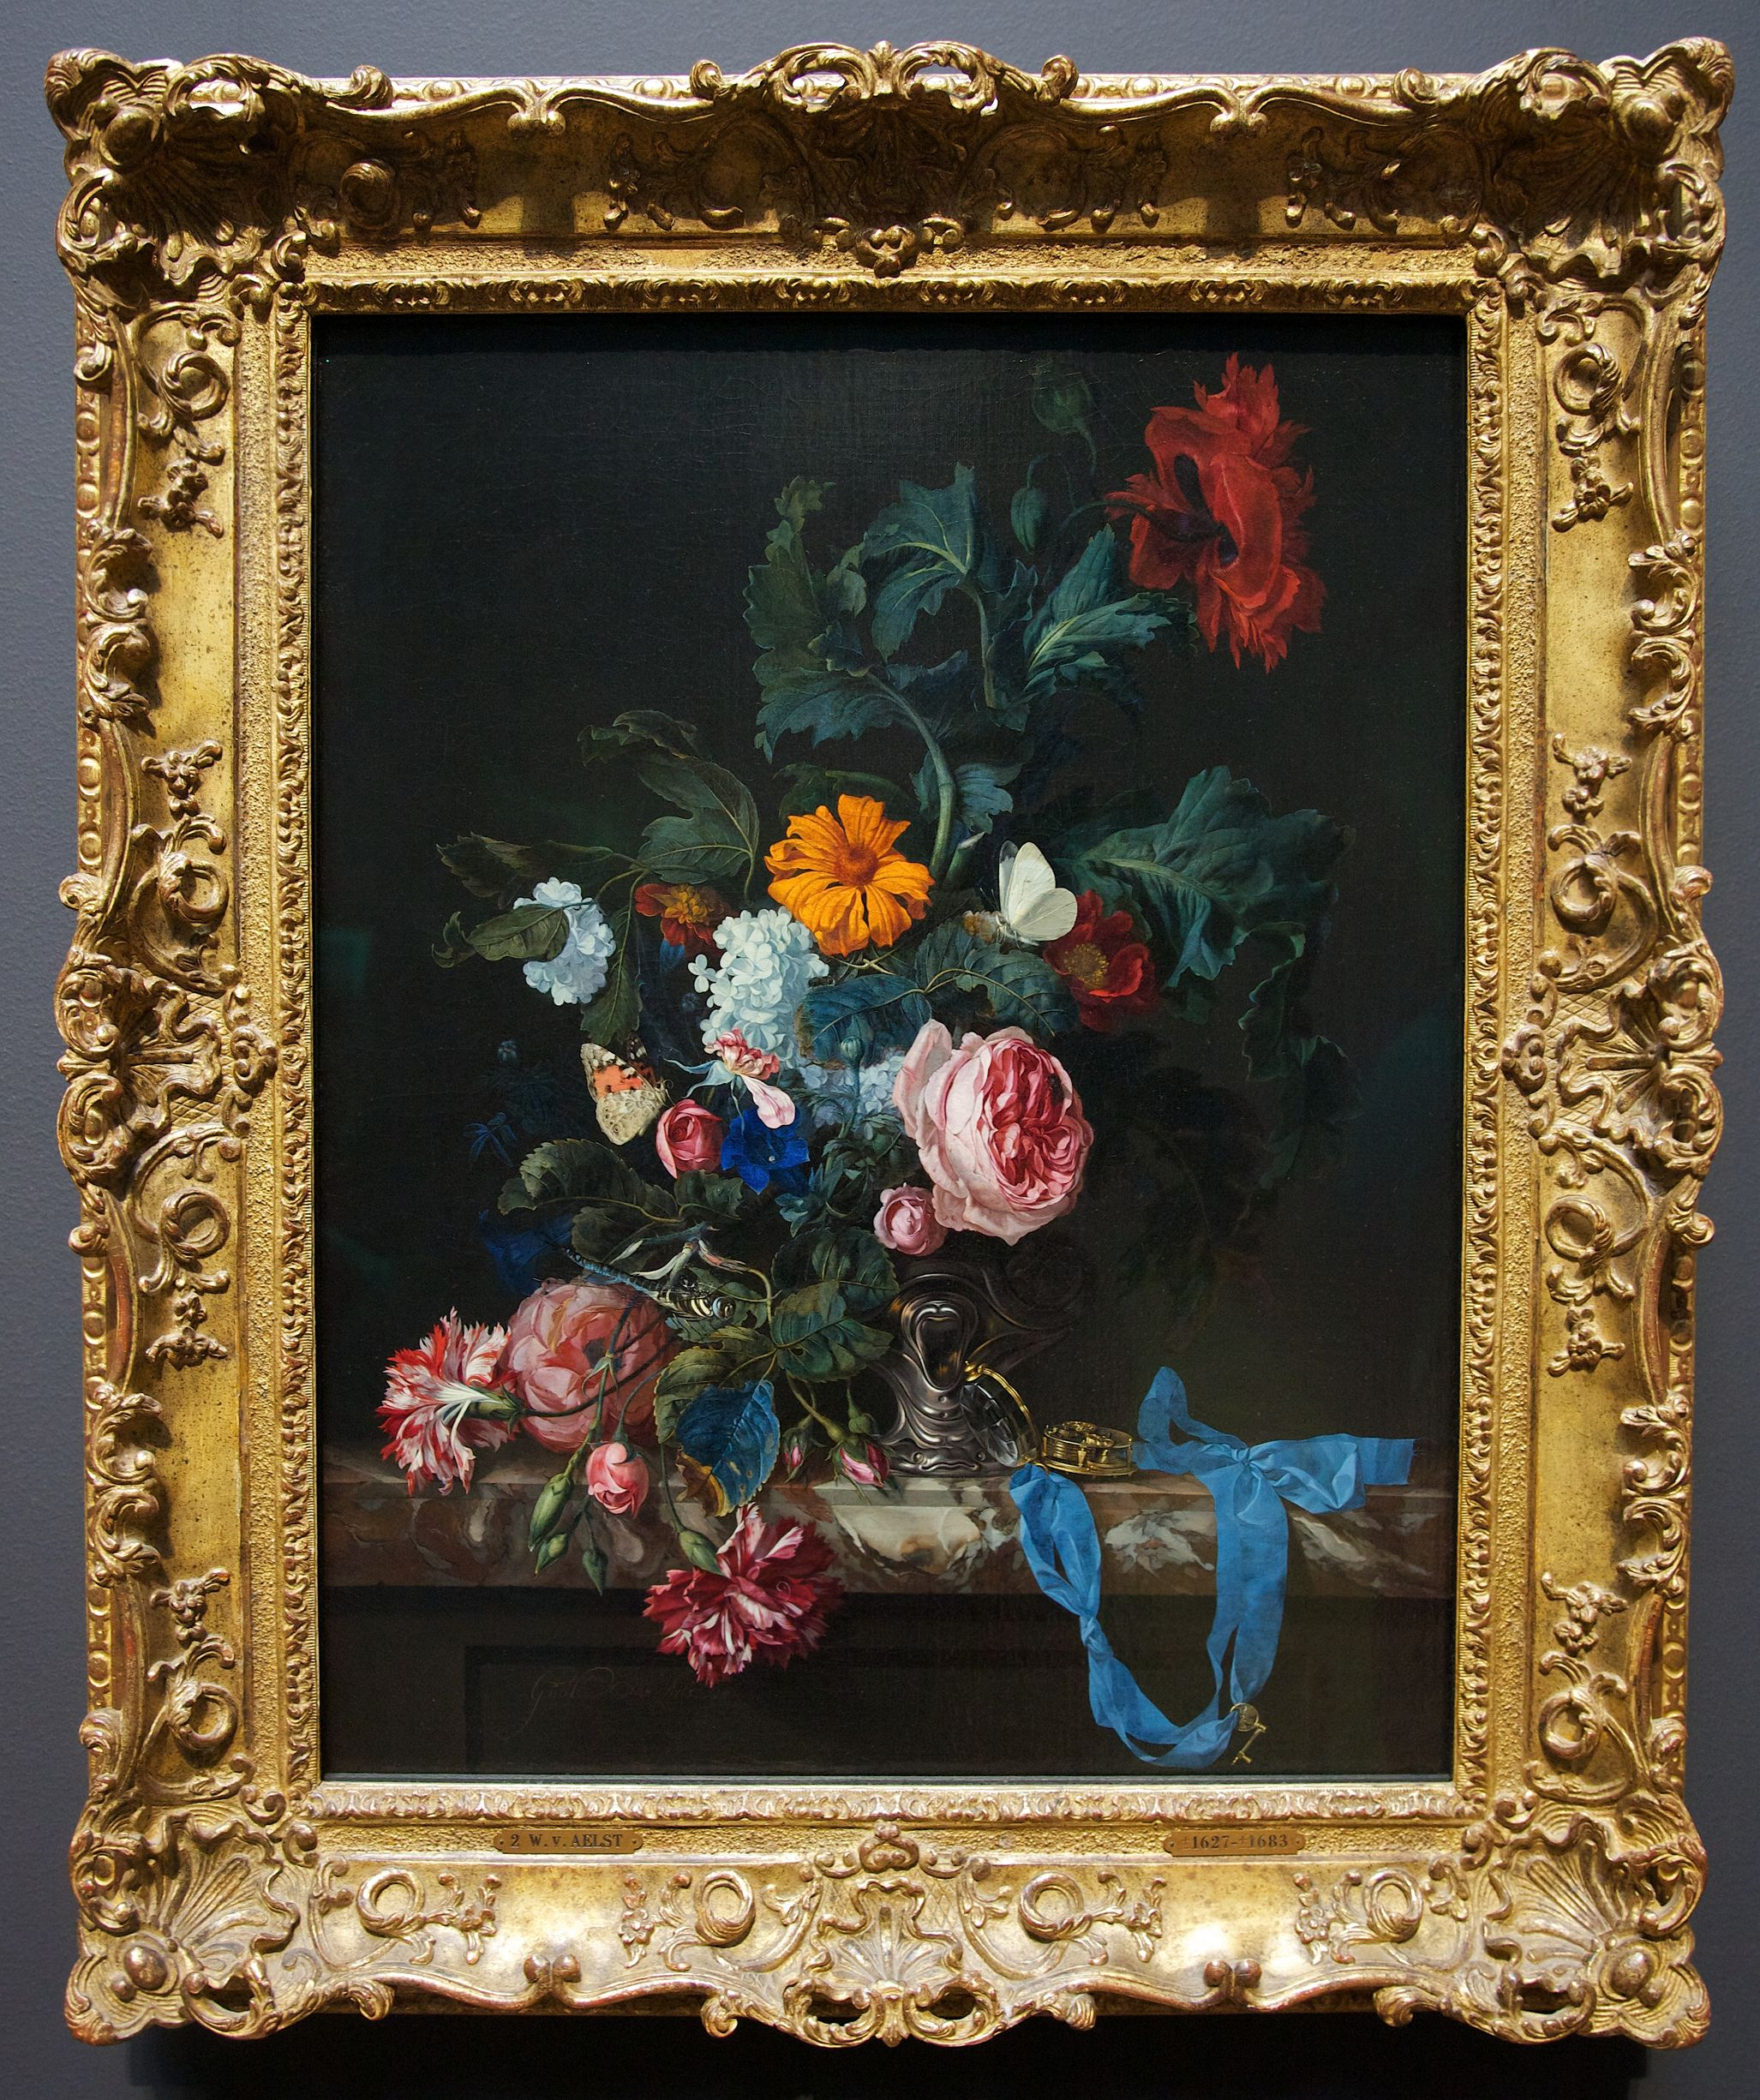 Willem van aelst floral still life with a pocket watch 1663 willem van aelst floral still life with a pocket watch 1663 jeuxipadfo Image collections